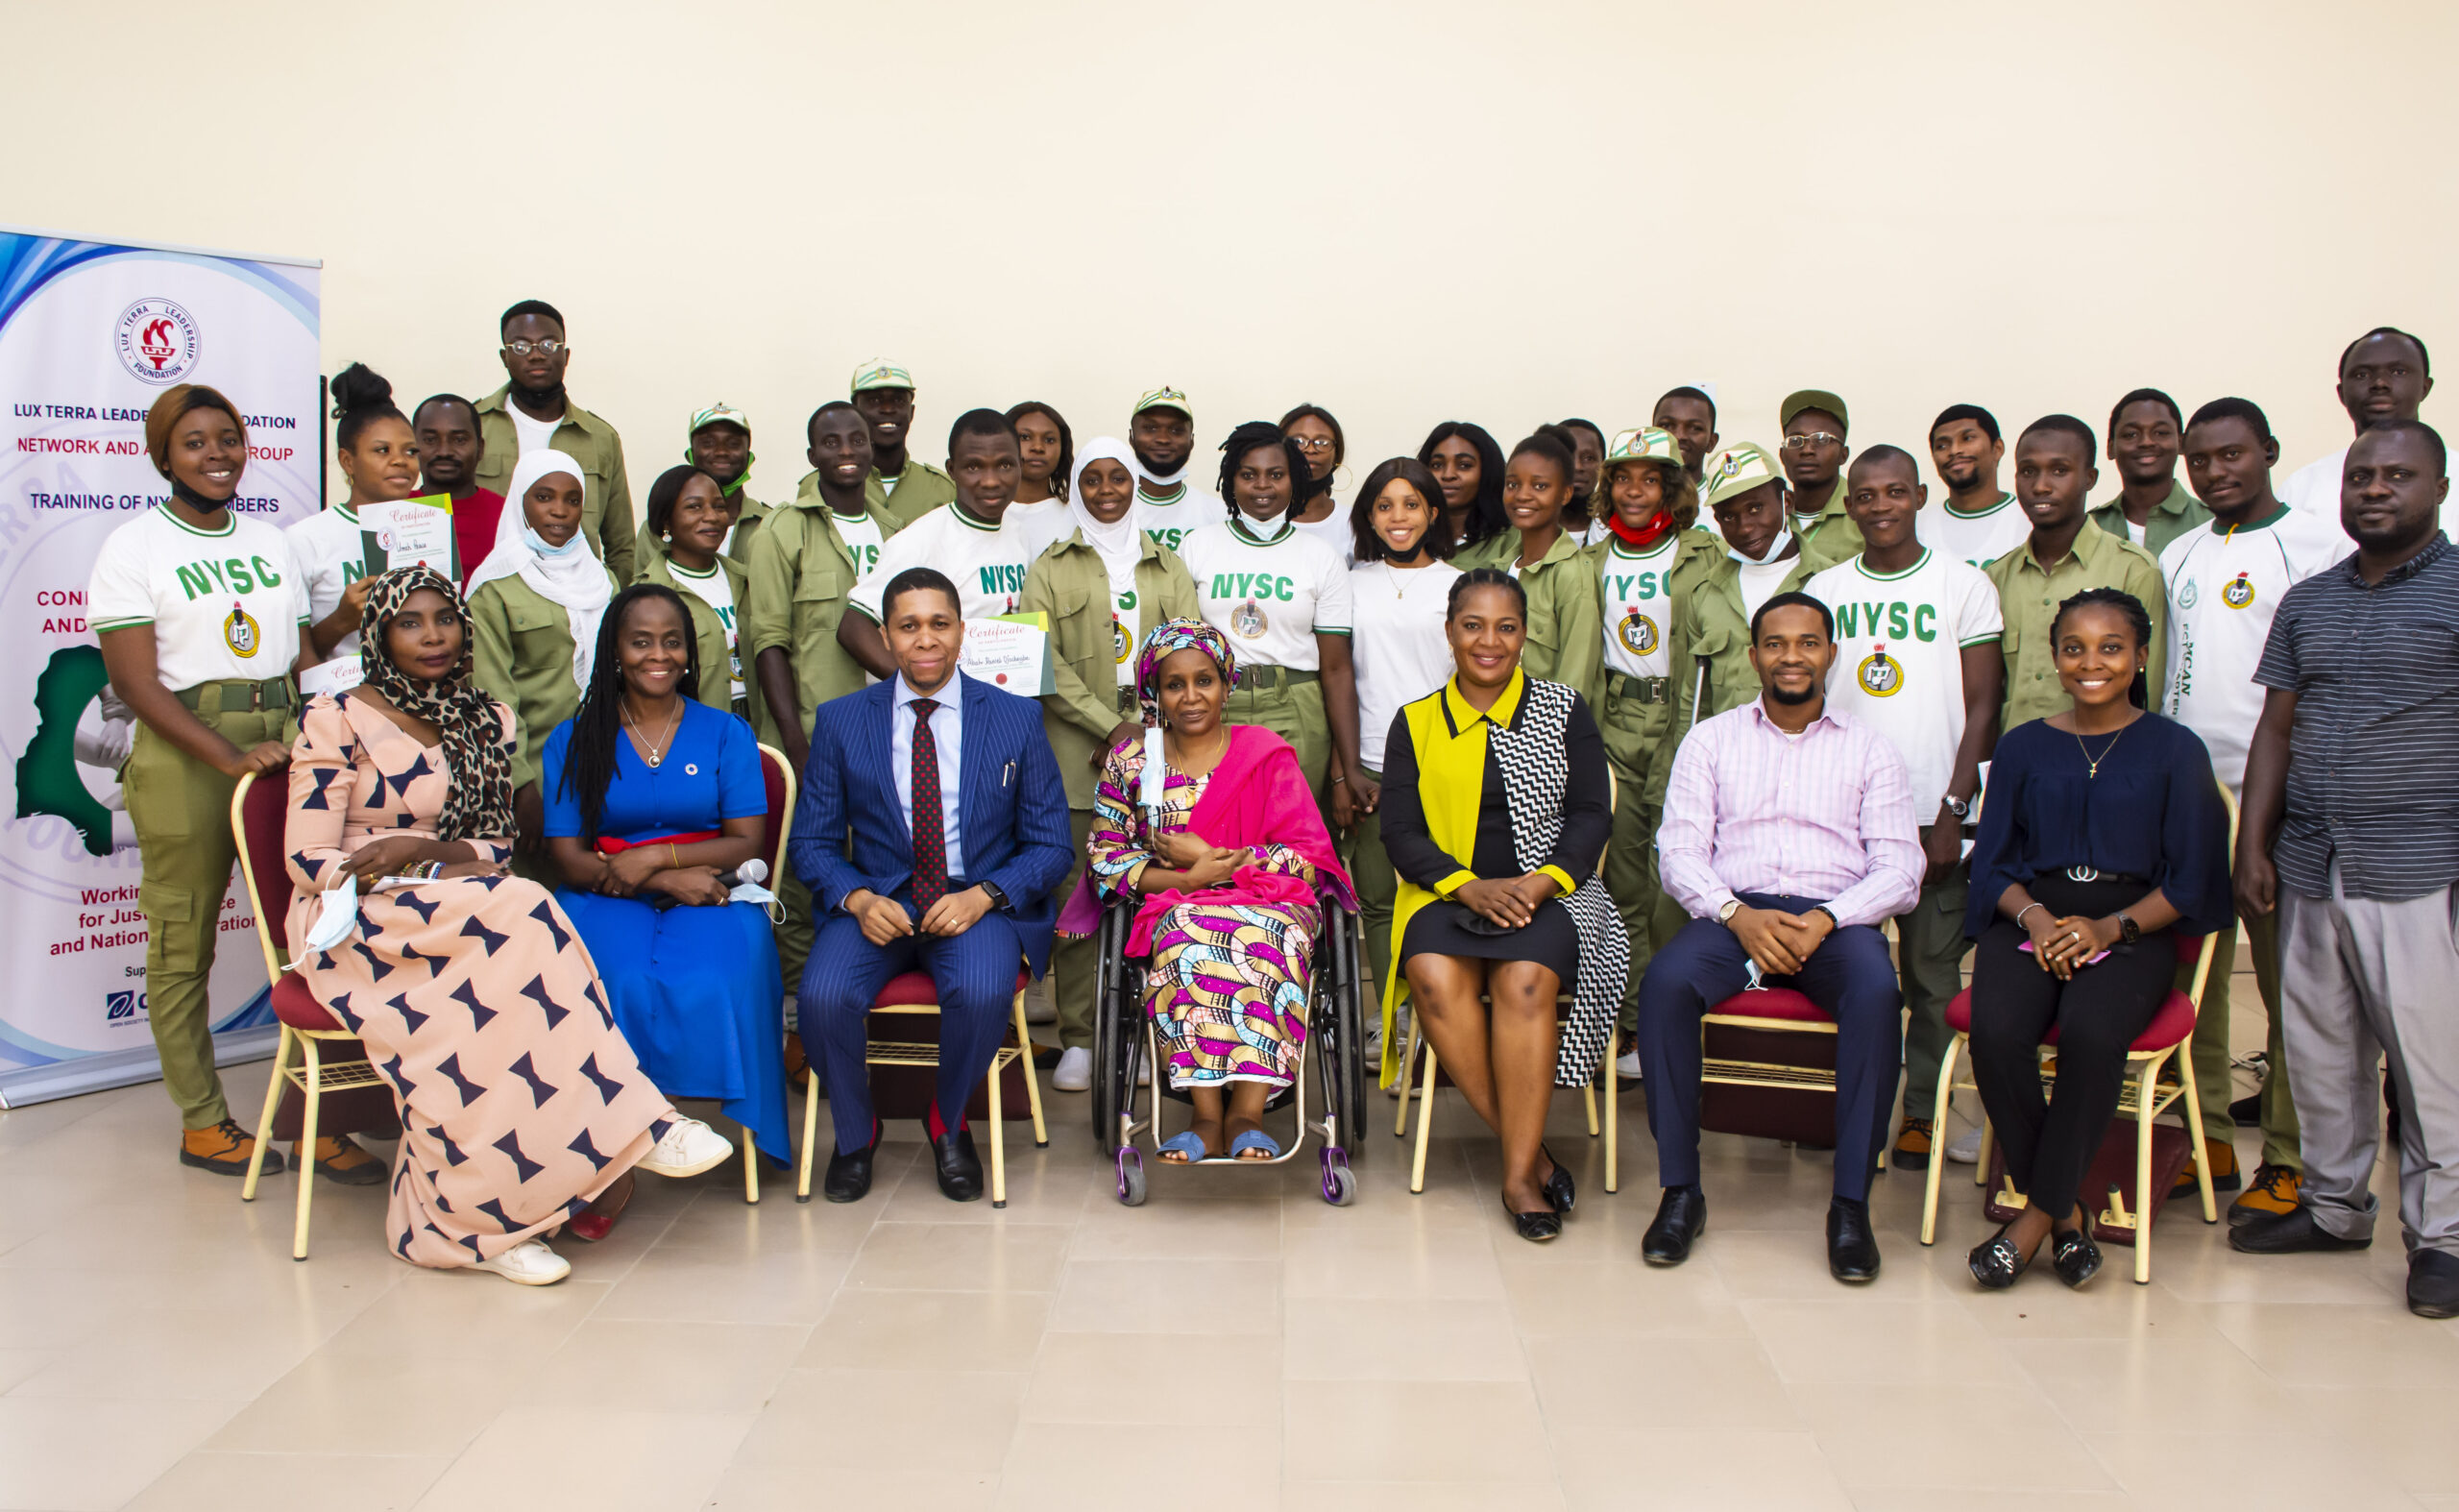 LUX TERRA LEADERSHIP FOUNDATION TRAINS NYSC MEMBERS ON CONFLICT PREVENTION, CITIZENSHIP AND NATION BUILDING